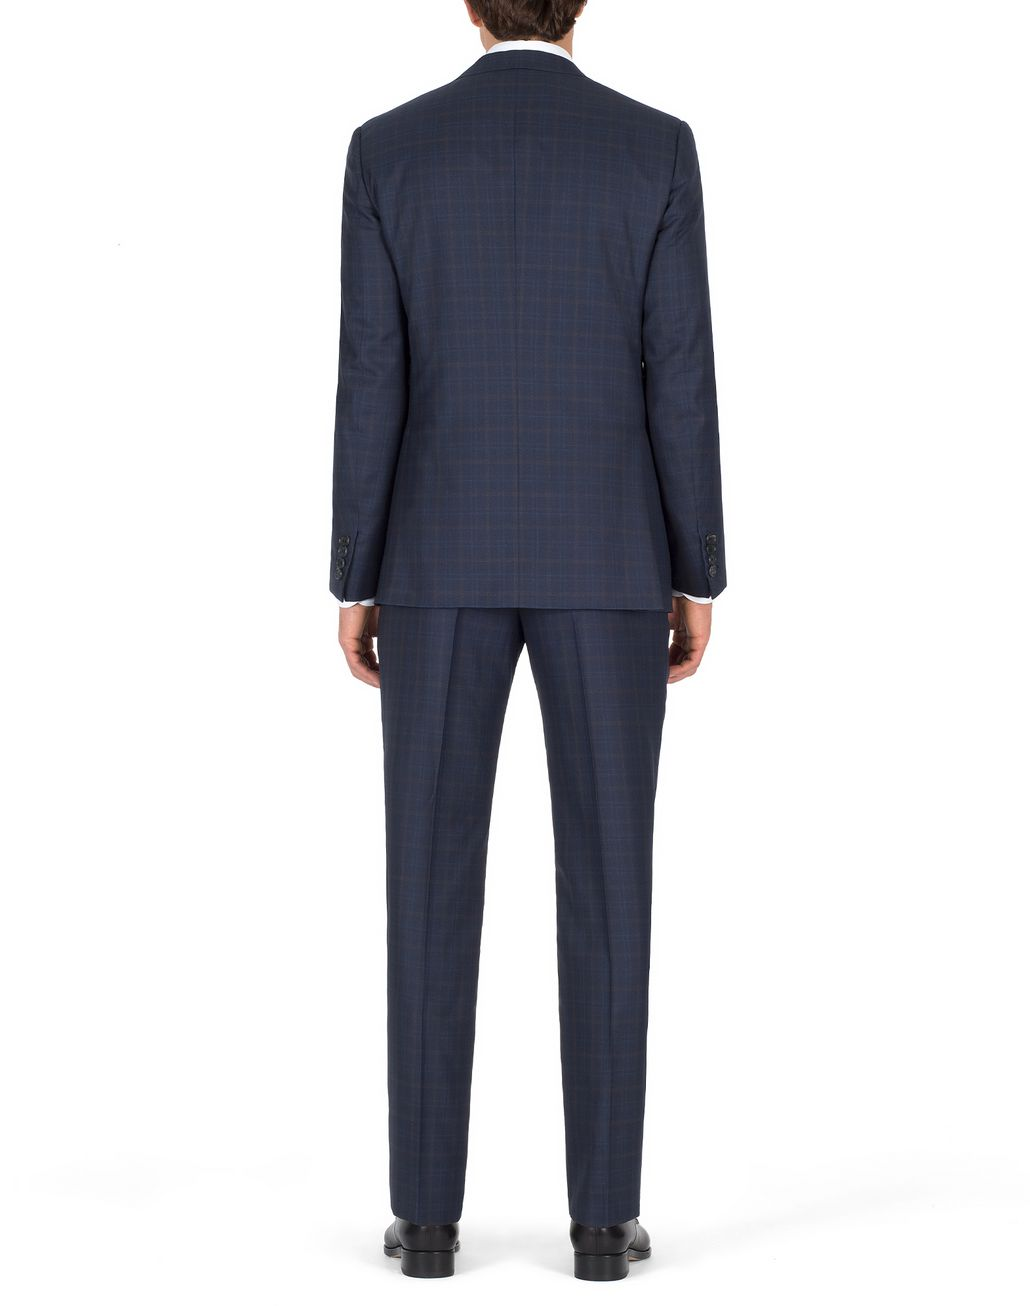 BRIONI Navy Blue Subtle Check Brunico Suit Suits & Jackets U d